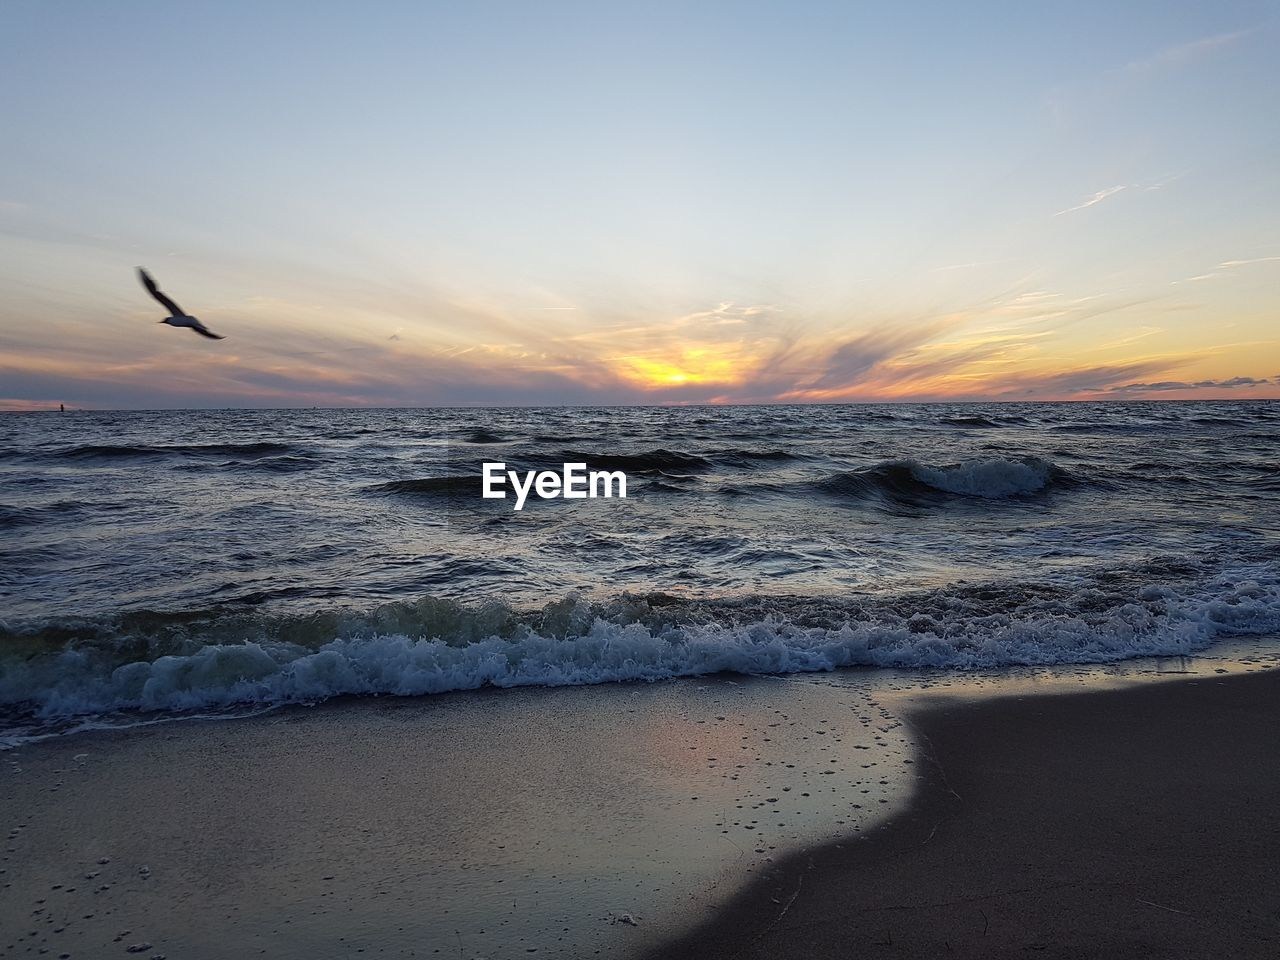 sea, sunset, beauty in nature, nature, scenics, water, beach, wave, horizon over water, sky, tranquility, tranquil scene, sand, no people, outdoors, motion, animal themes, day, bird